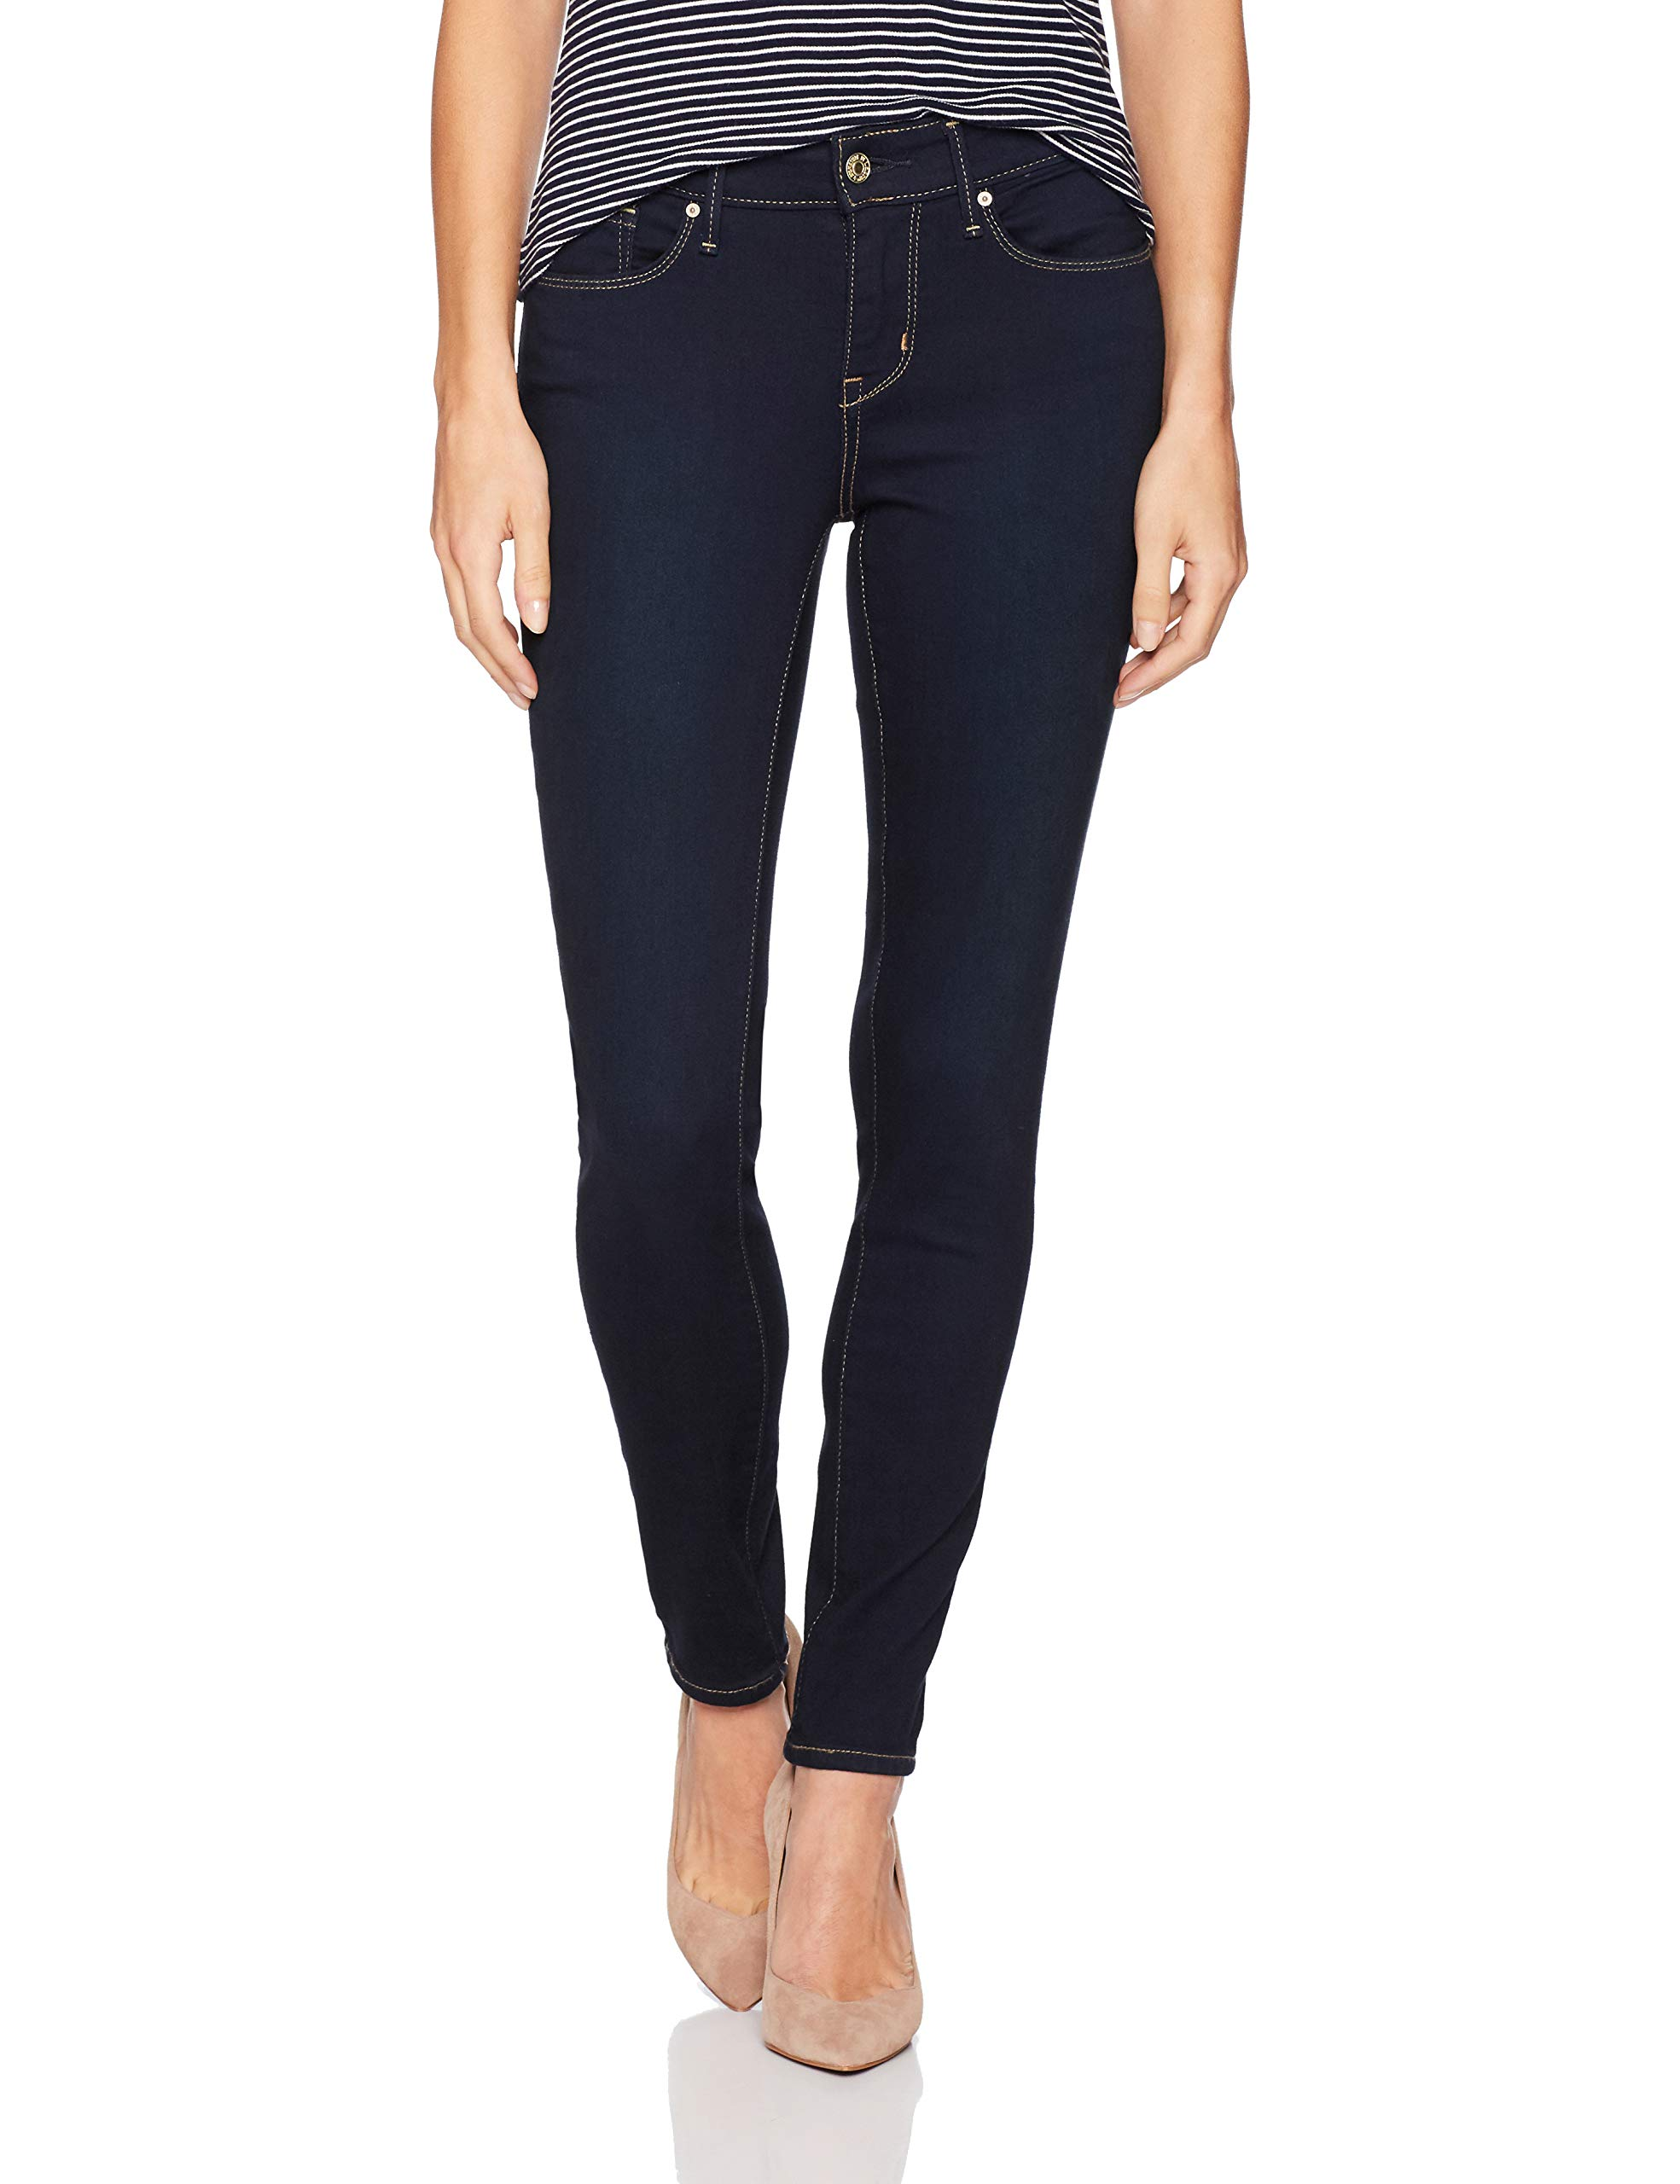 df84083dfa18 Signature by Levi Strauss & Co. Gold Label Women's Modern Skinny Jeans